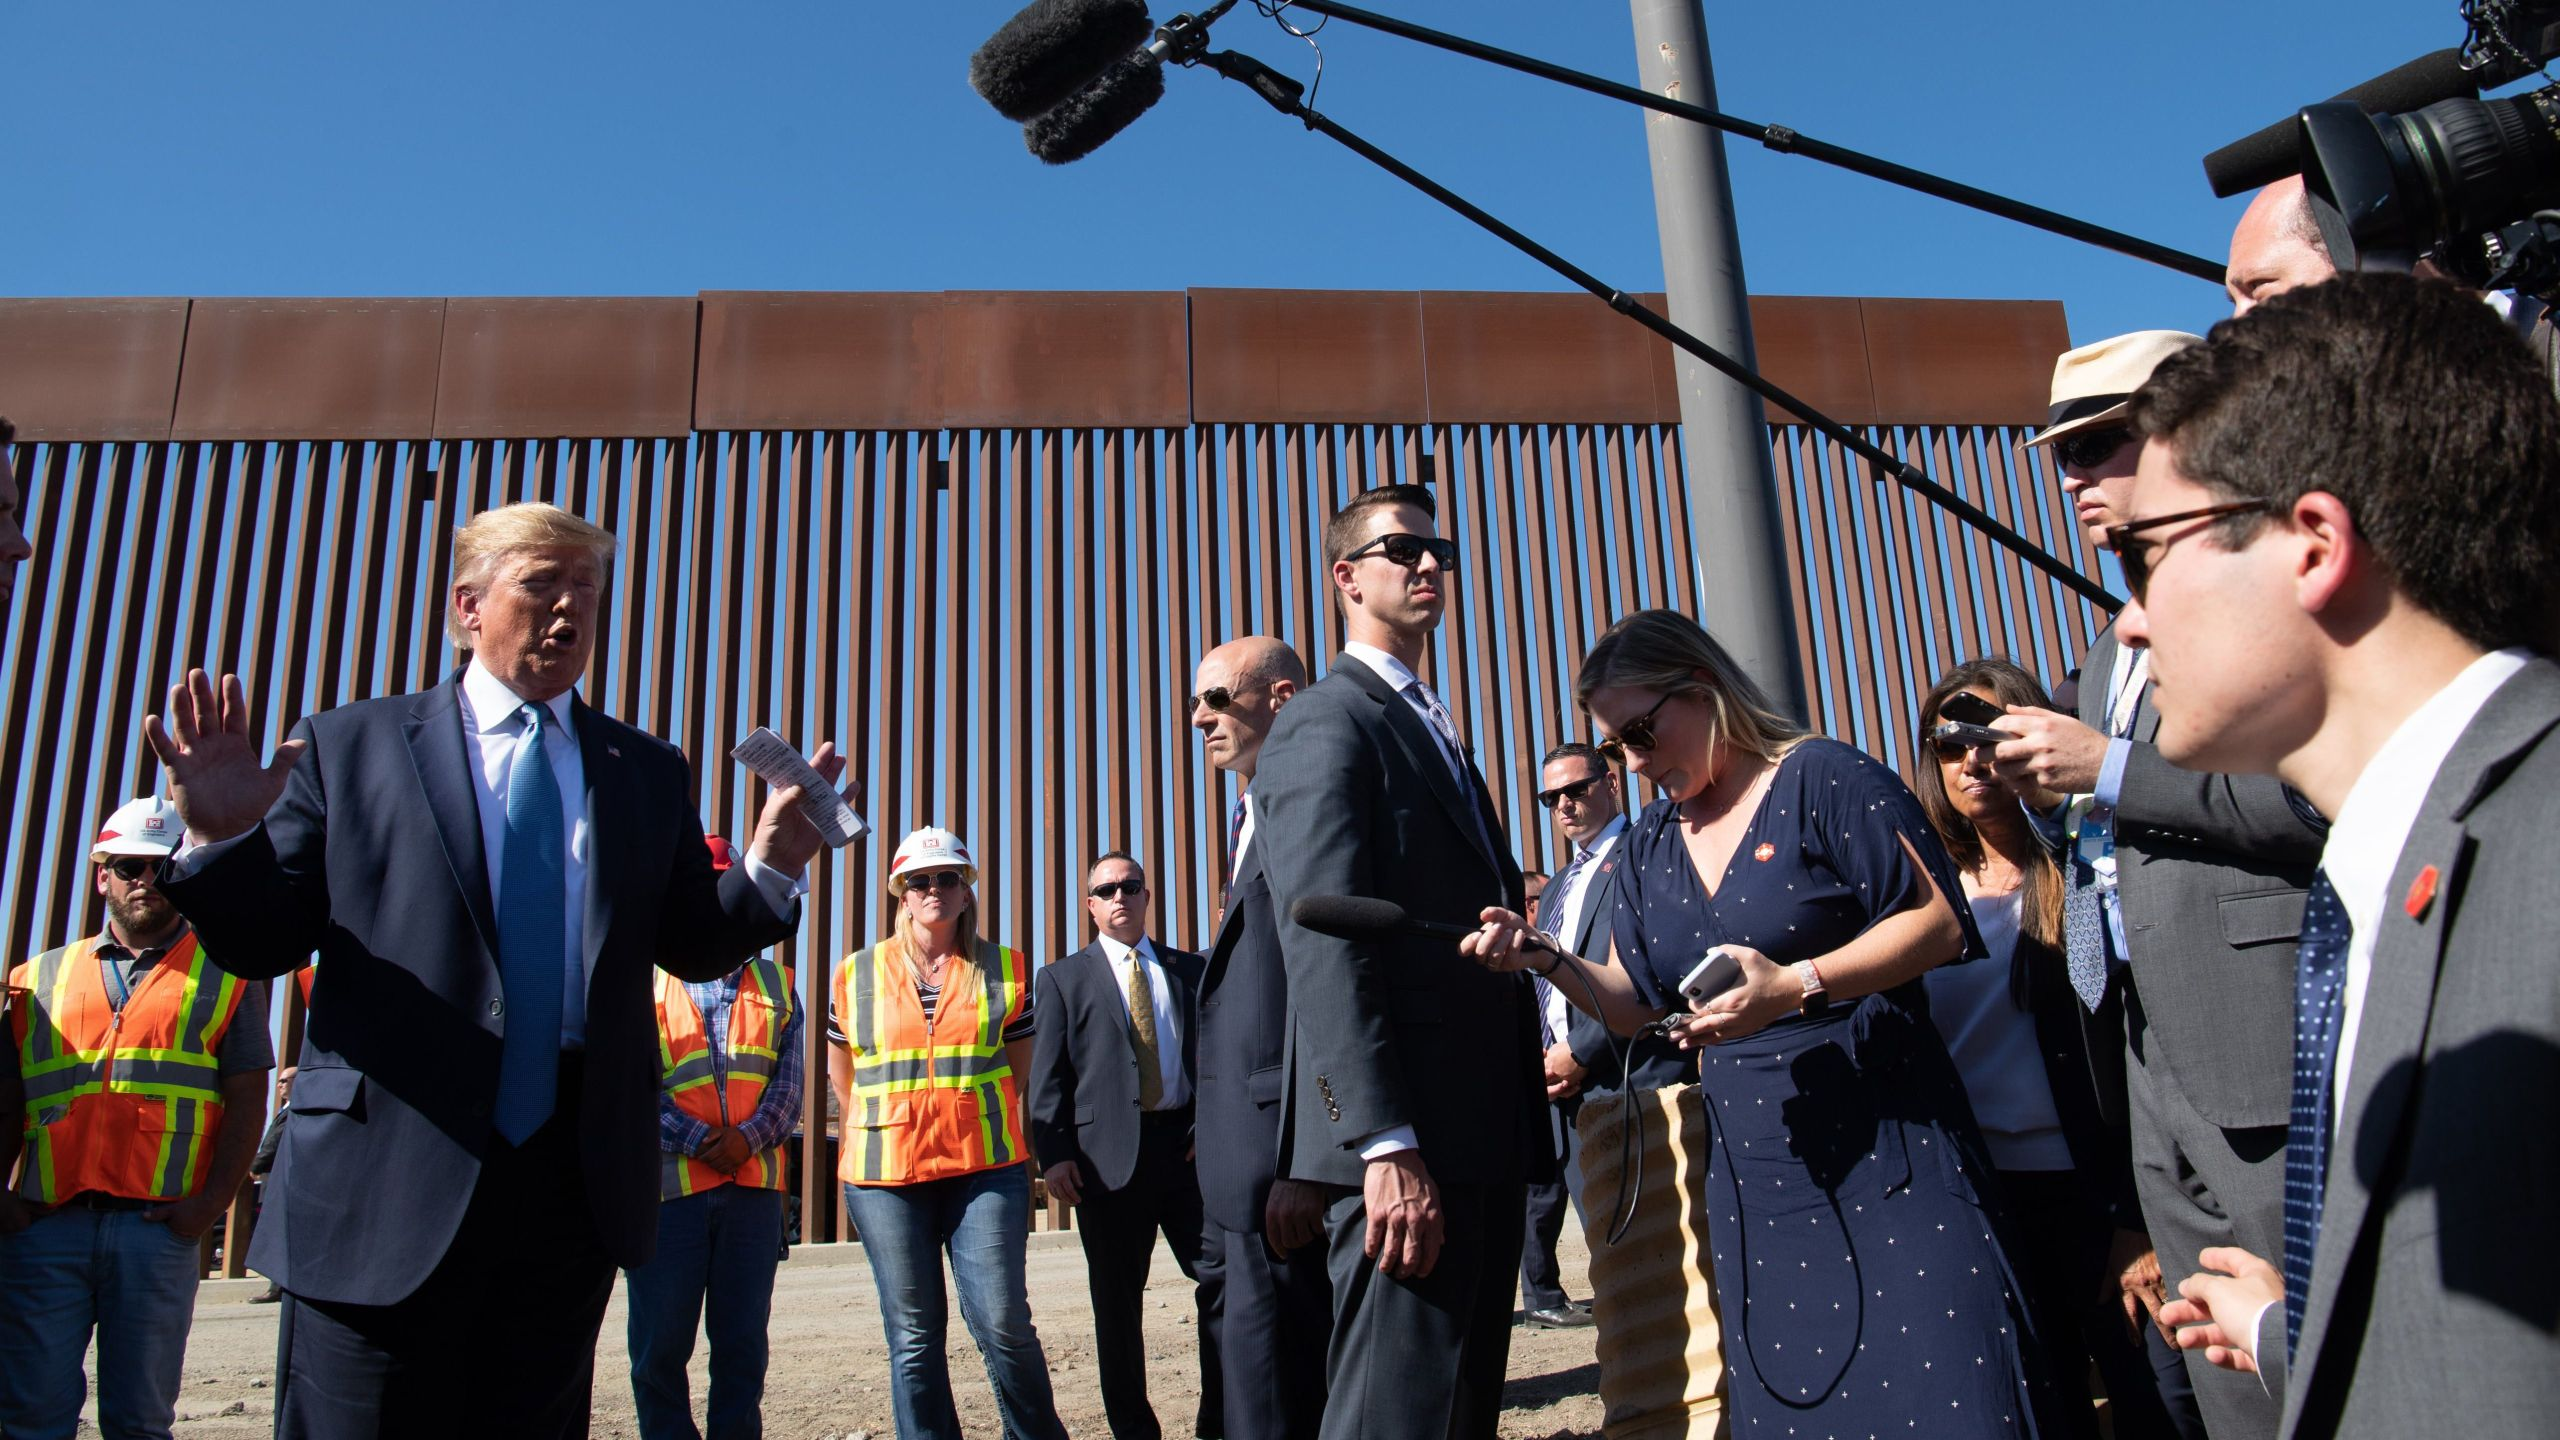 Donald Trump, left, speaks to the media during a visit the U.S.-Mexico border fence in Otay Mesa on Sept. 18, 2019. (Credit: NICHOLAS KAMM/AFP/Getty Images)